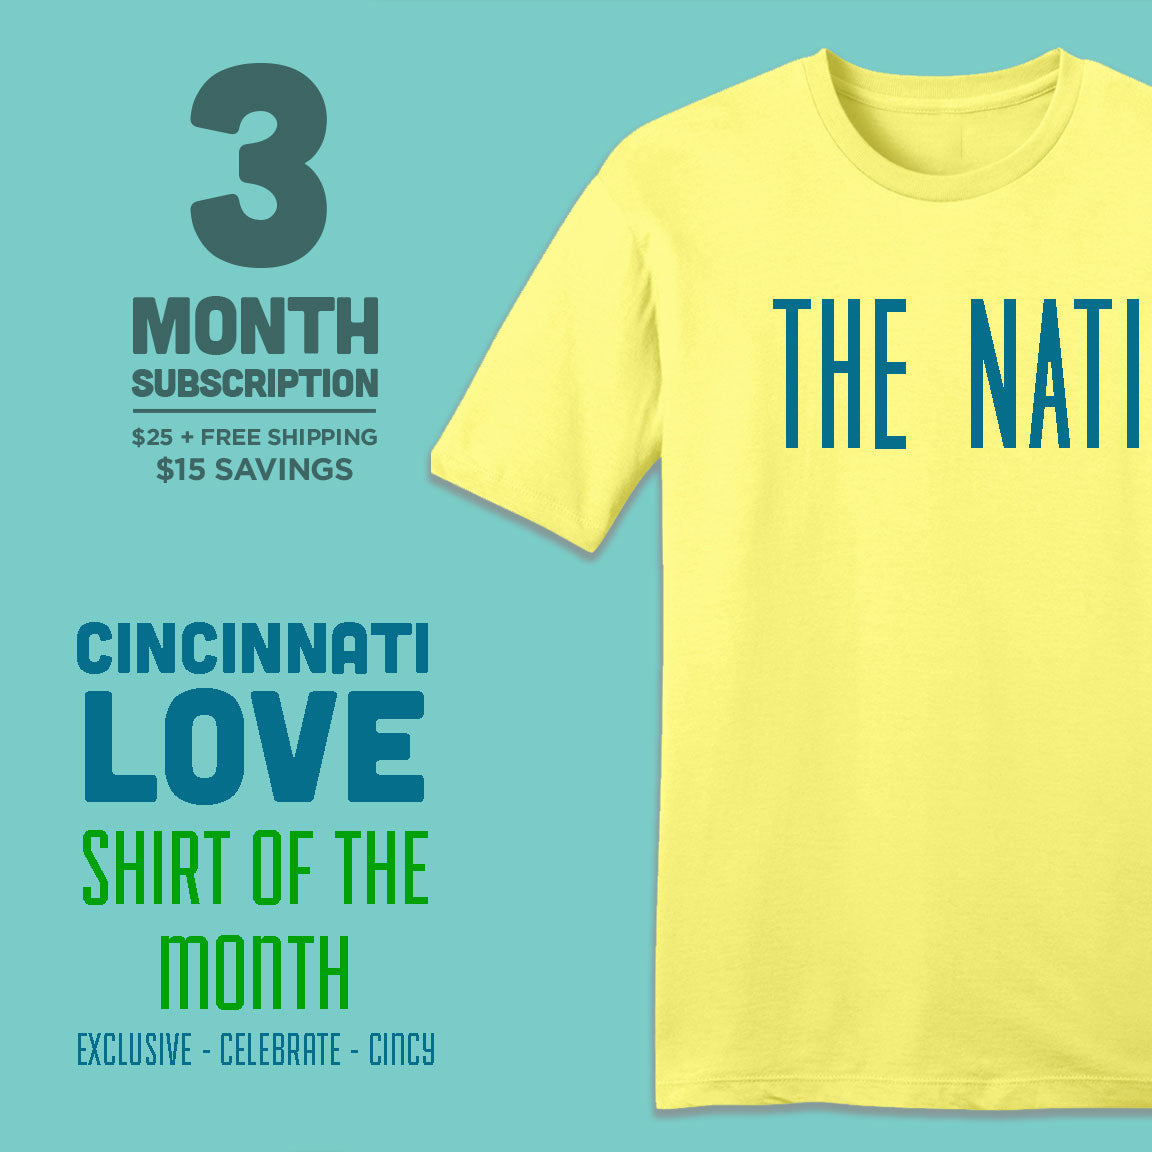 3-Month Cincinnati Love Shirt of the Month - Cincy Shirts